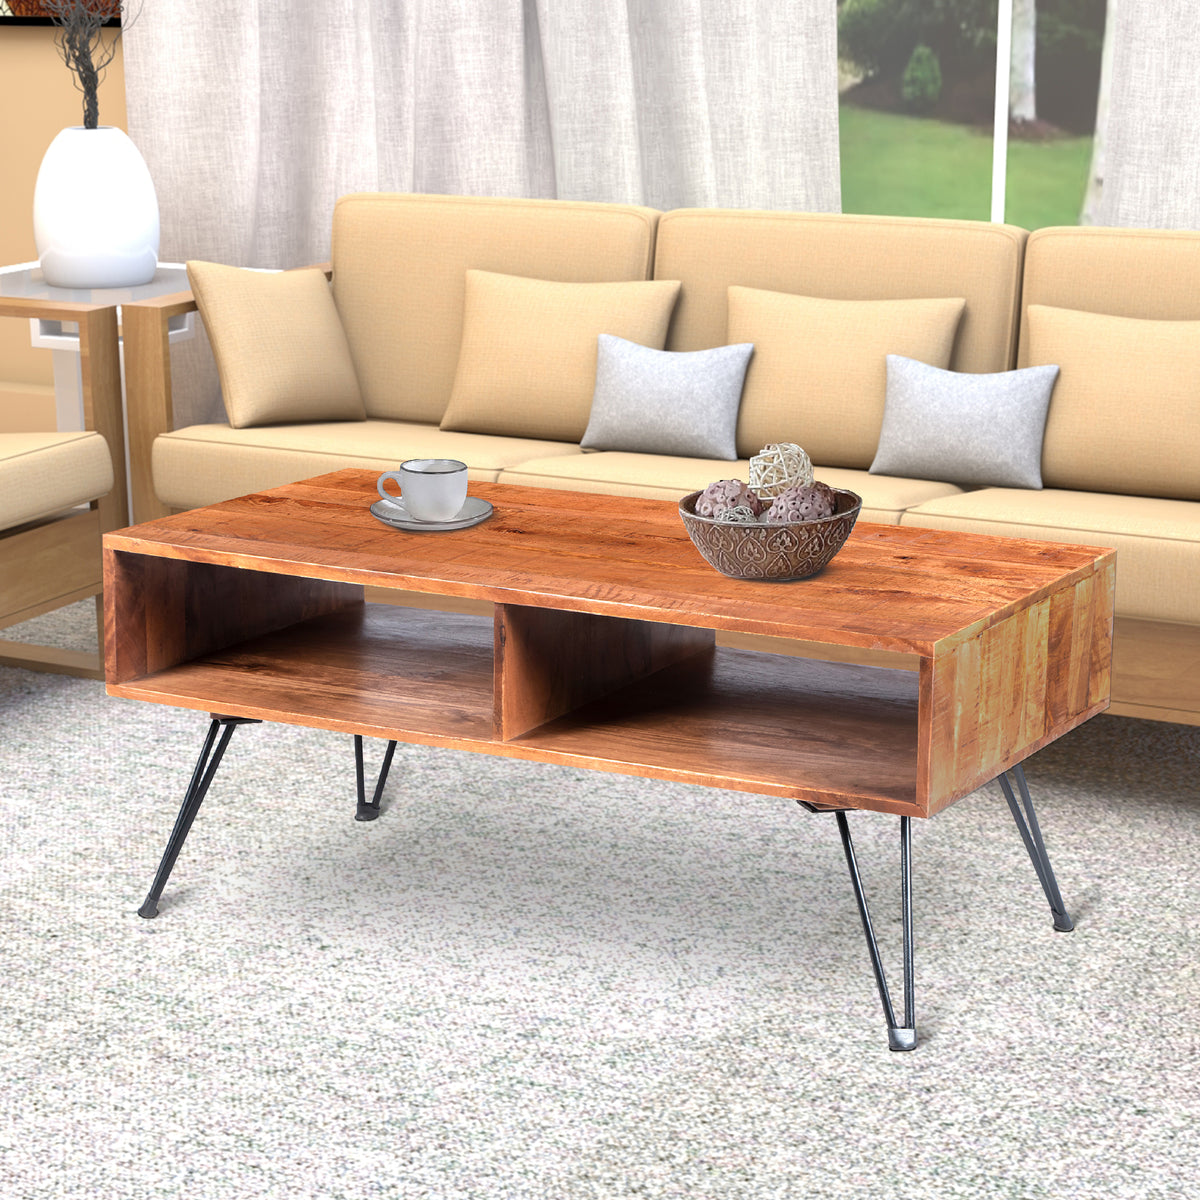 The Urban Port 42 Inch Handcrafted Mango Wood Coffee Table With Metal Hairpin Legs Brown And Black Upt 195121 Benzara Com [ 1200 x 1200 Pixel ]